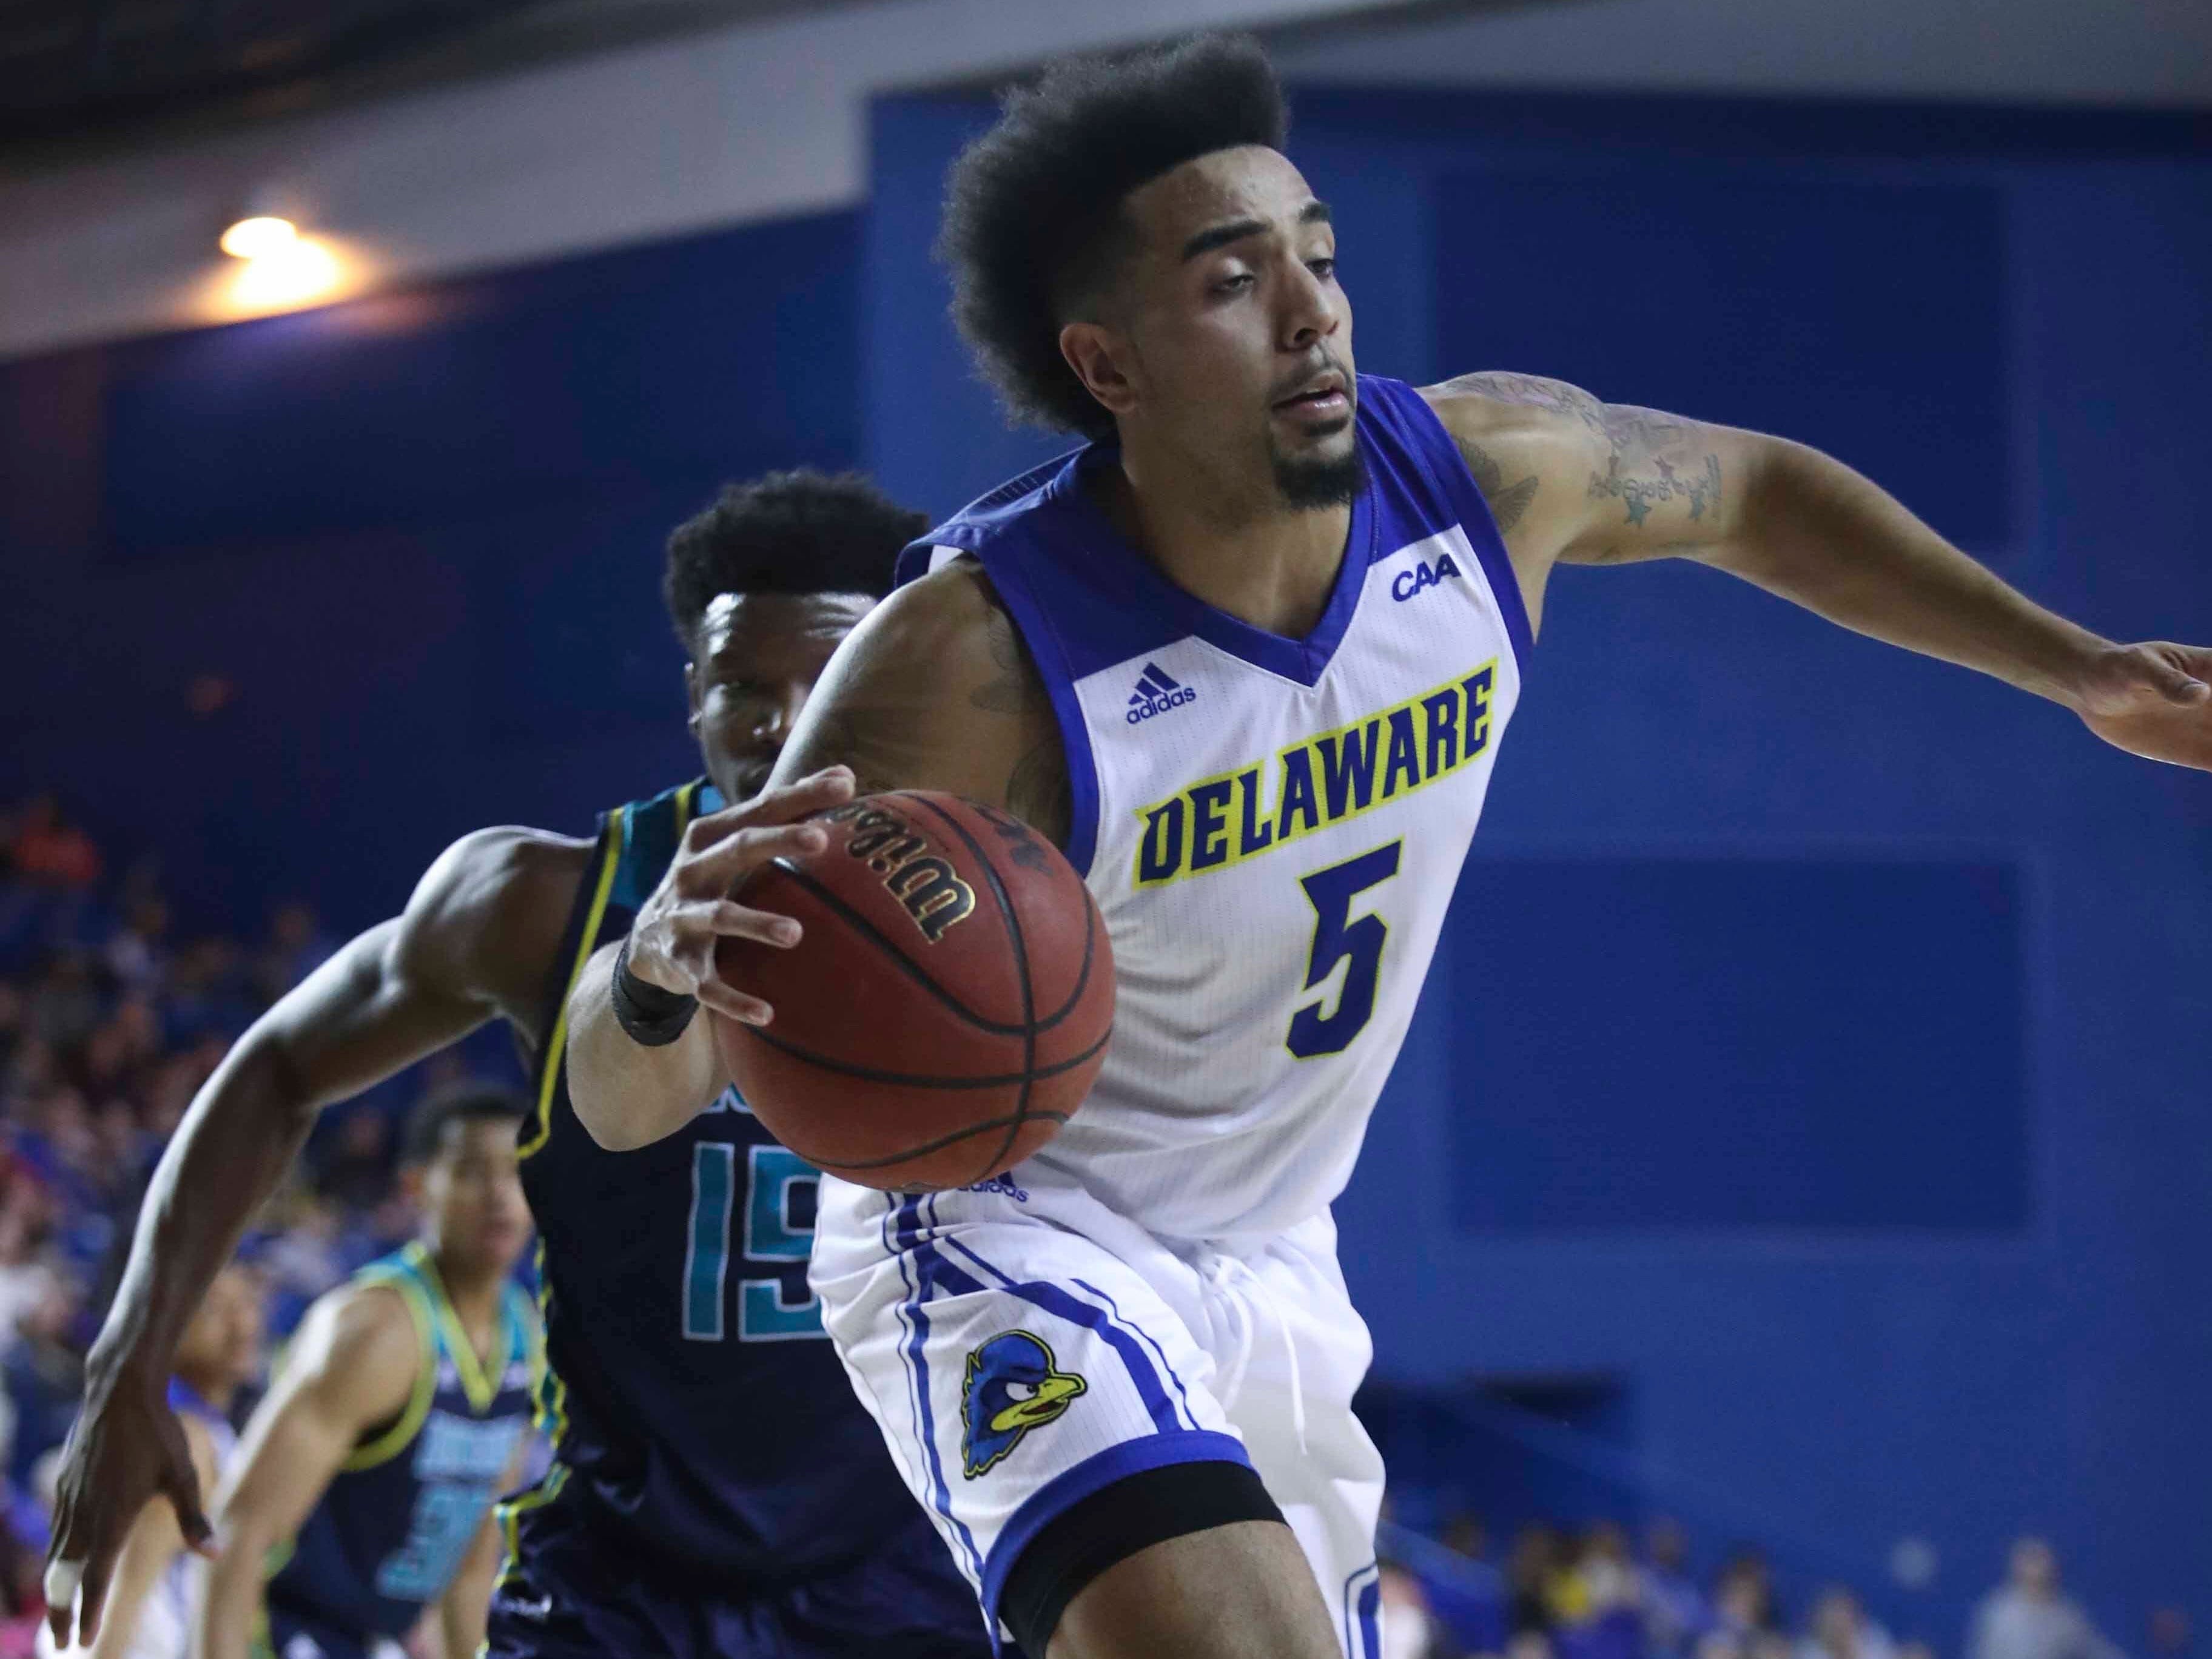 Delaware's Eric Carter is knocked off balance by UNC-Wilmington's Devontae Cacok in the second half of Delaware's 70-66 win at the Bob Carpenter Center Saturday.